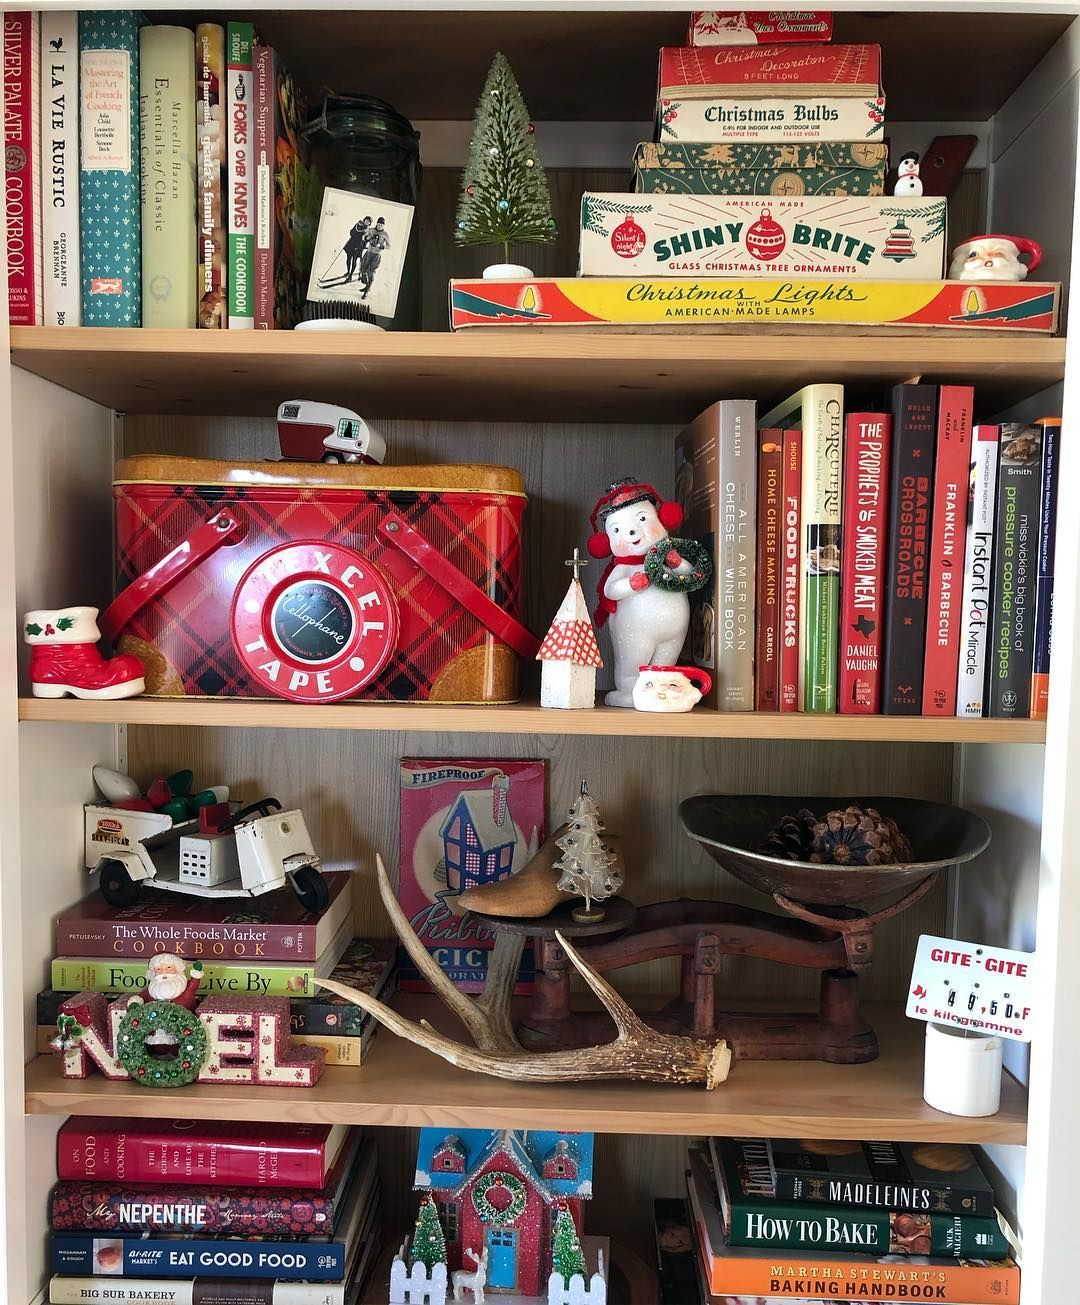 Christy Gervase On Instagram It S Getting Festive Up In Here Christmas In The House Vintagech Flea Market Decorating Vintage Christmas Flea Market Style